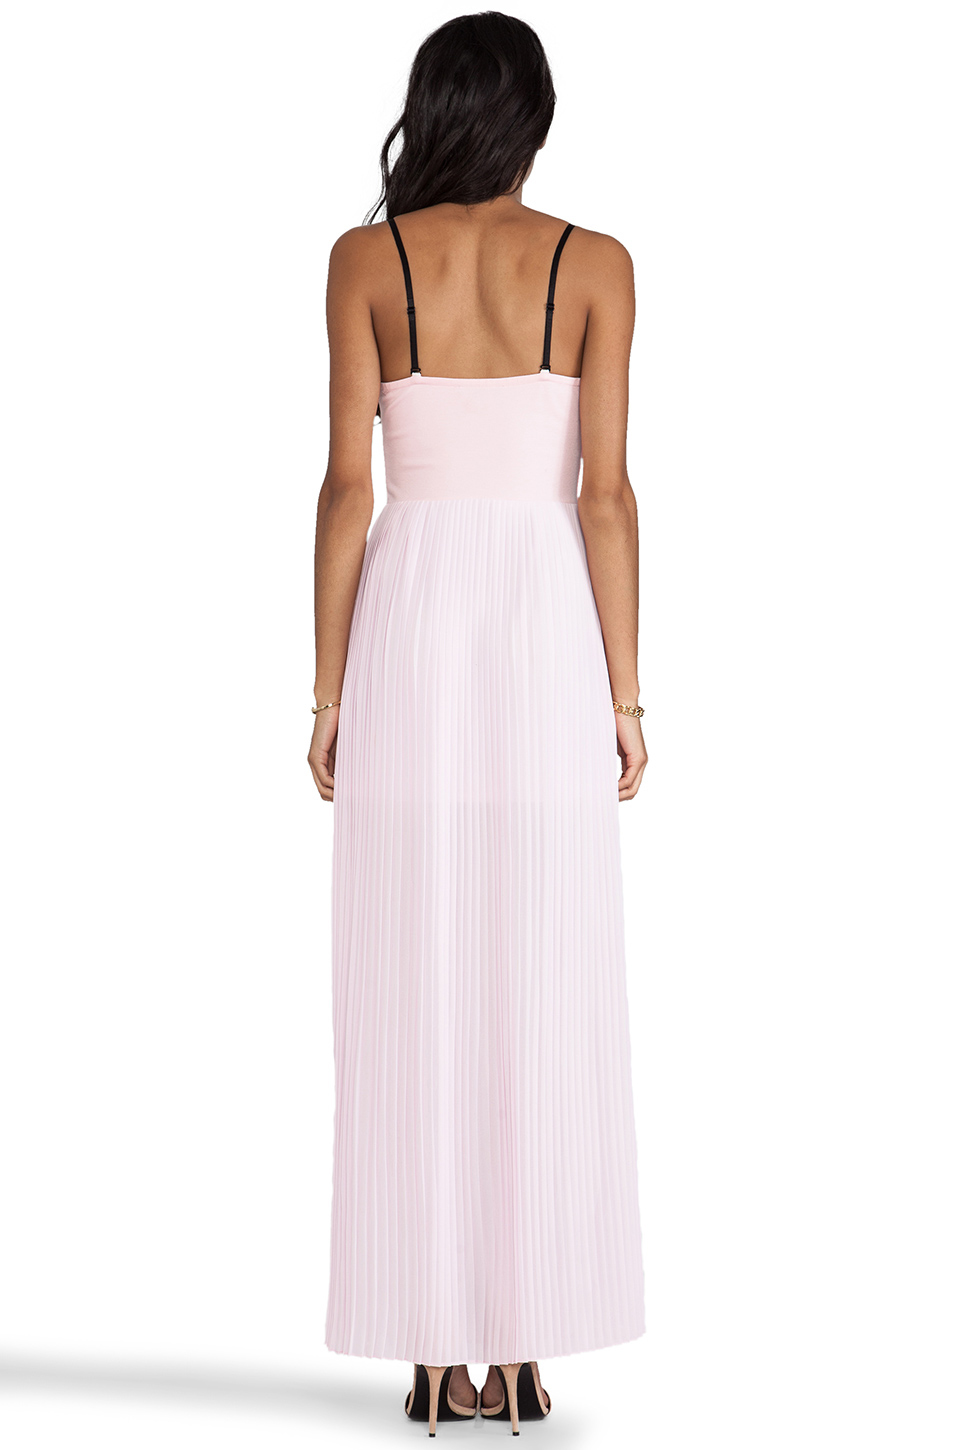 BLAQUE LABEL Pleated Maxi Dress in Pink